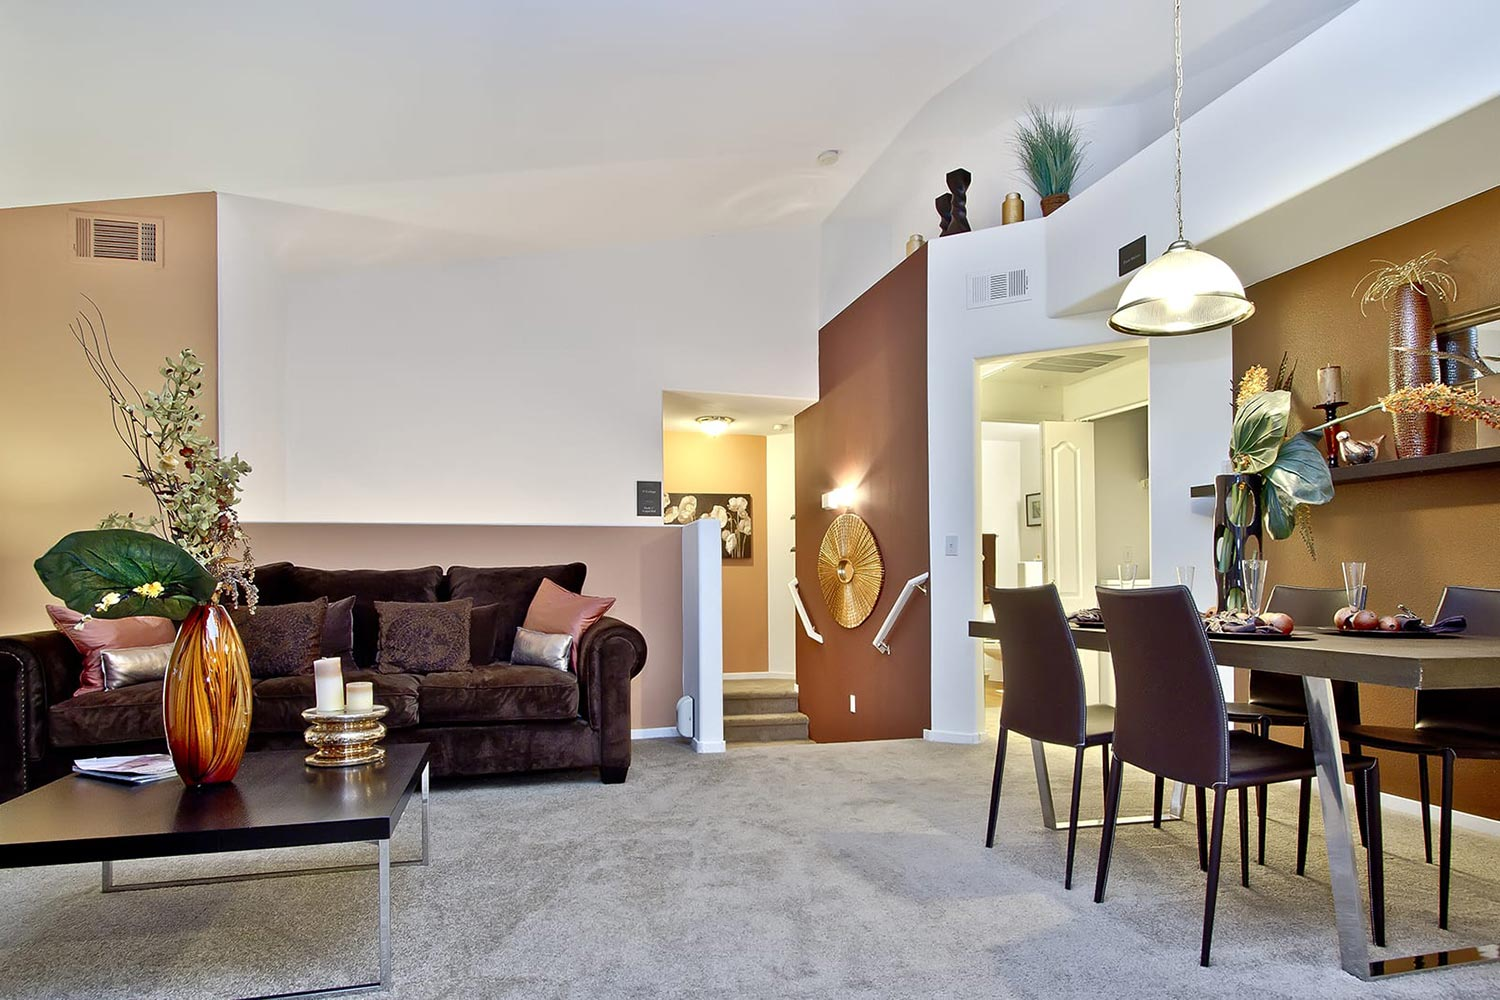 A living and dining room with tall vaulted ceilings, soft carpets, and comfortable furniture.